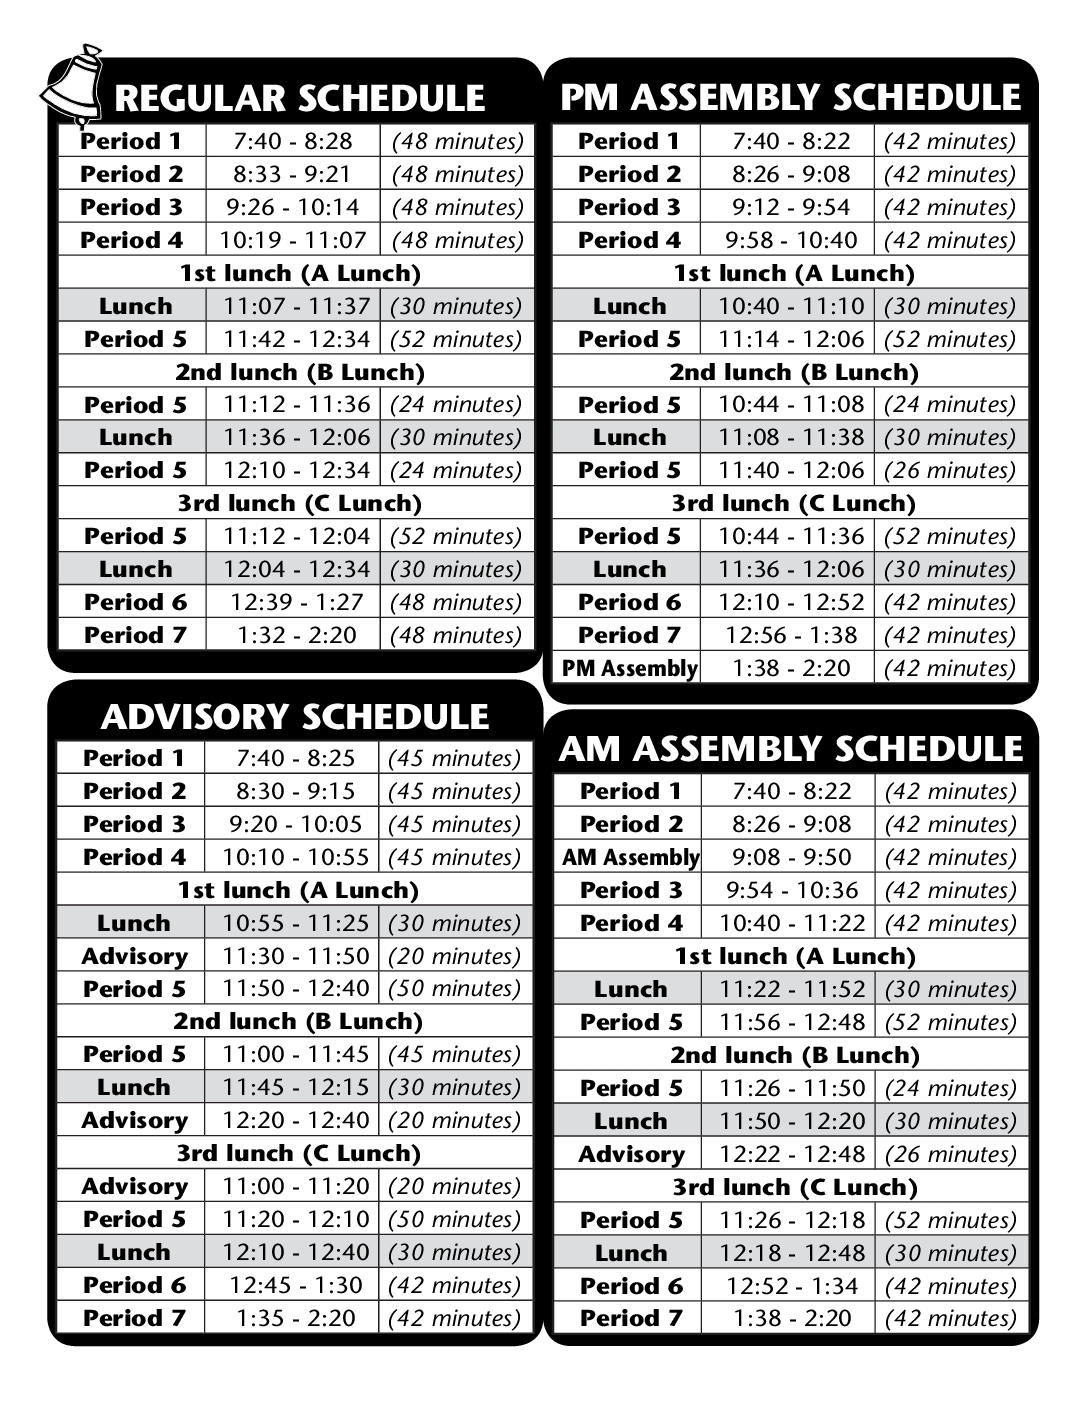 Waldo Bell Schedules: Regular, PM Assembly, Advisory, and AM Assembly